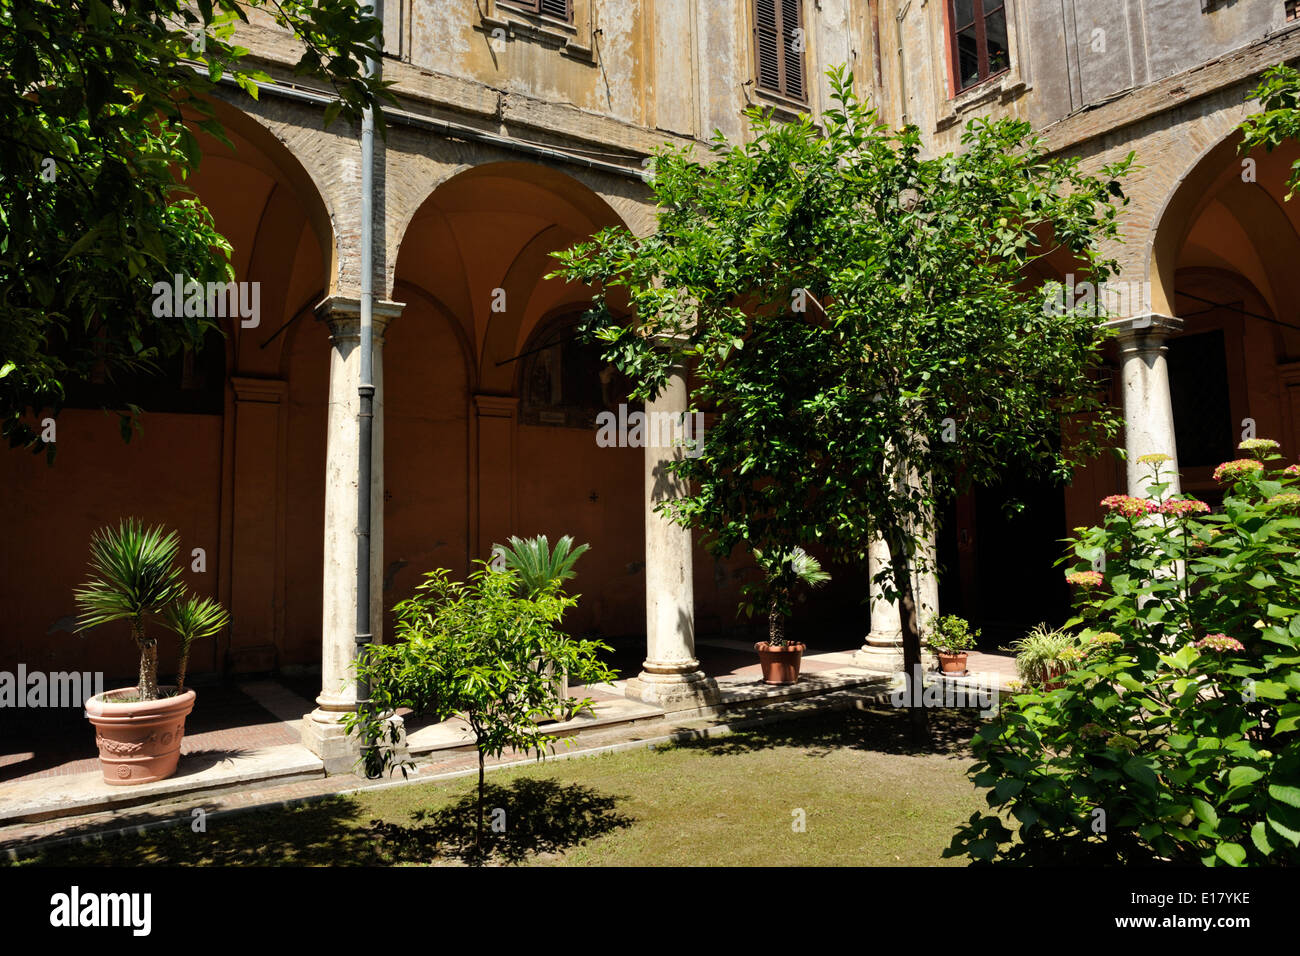 italy, rome, church of sant'andrea delle fratte, cloister - Stock Image